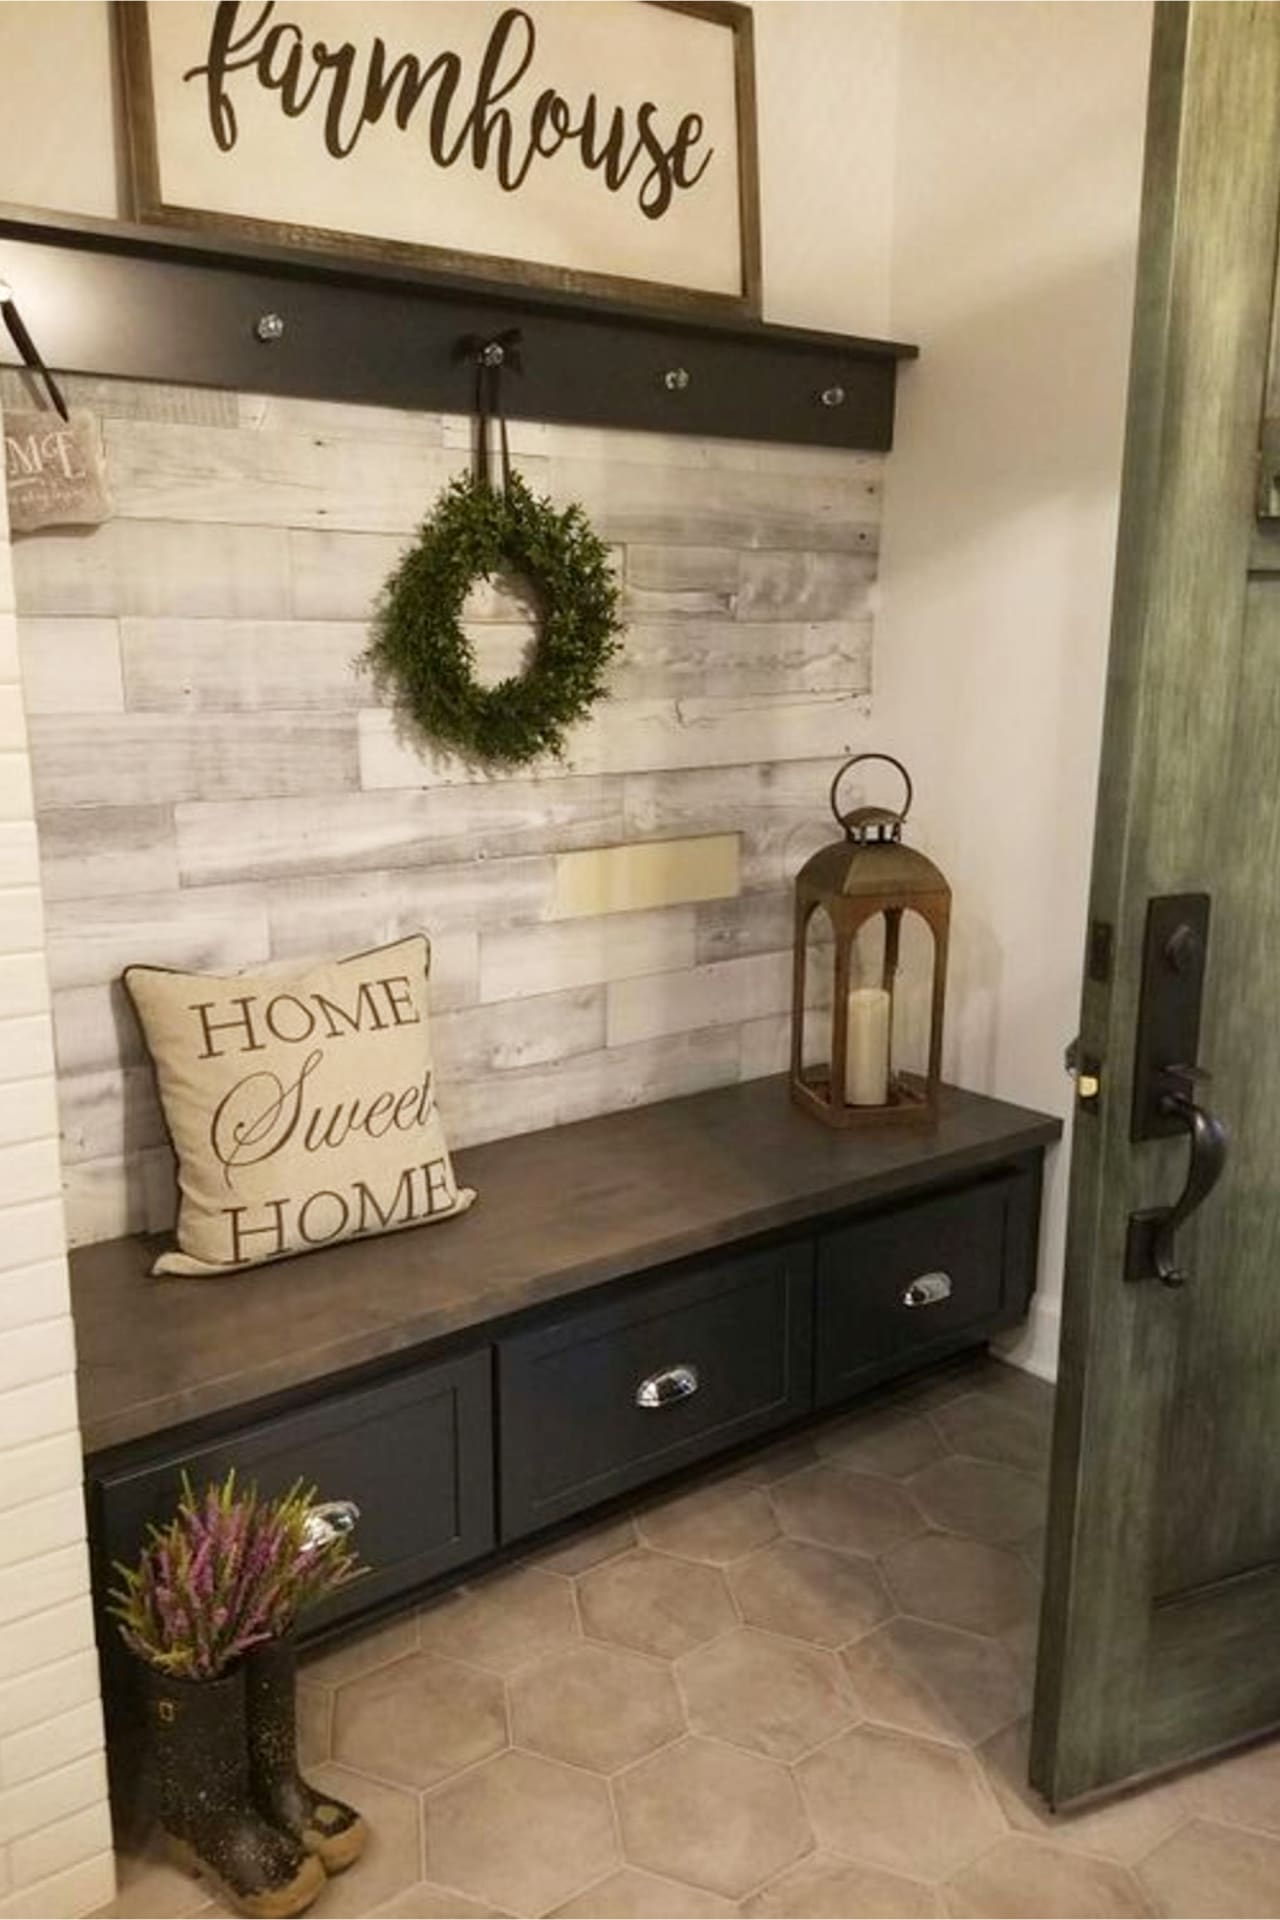 mudroom ideas - easy DIY mudroom ideas - simple mud rooms ideas for entryway way, laundry, entrance off porches and more mudroom ideas